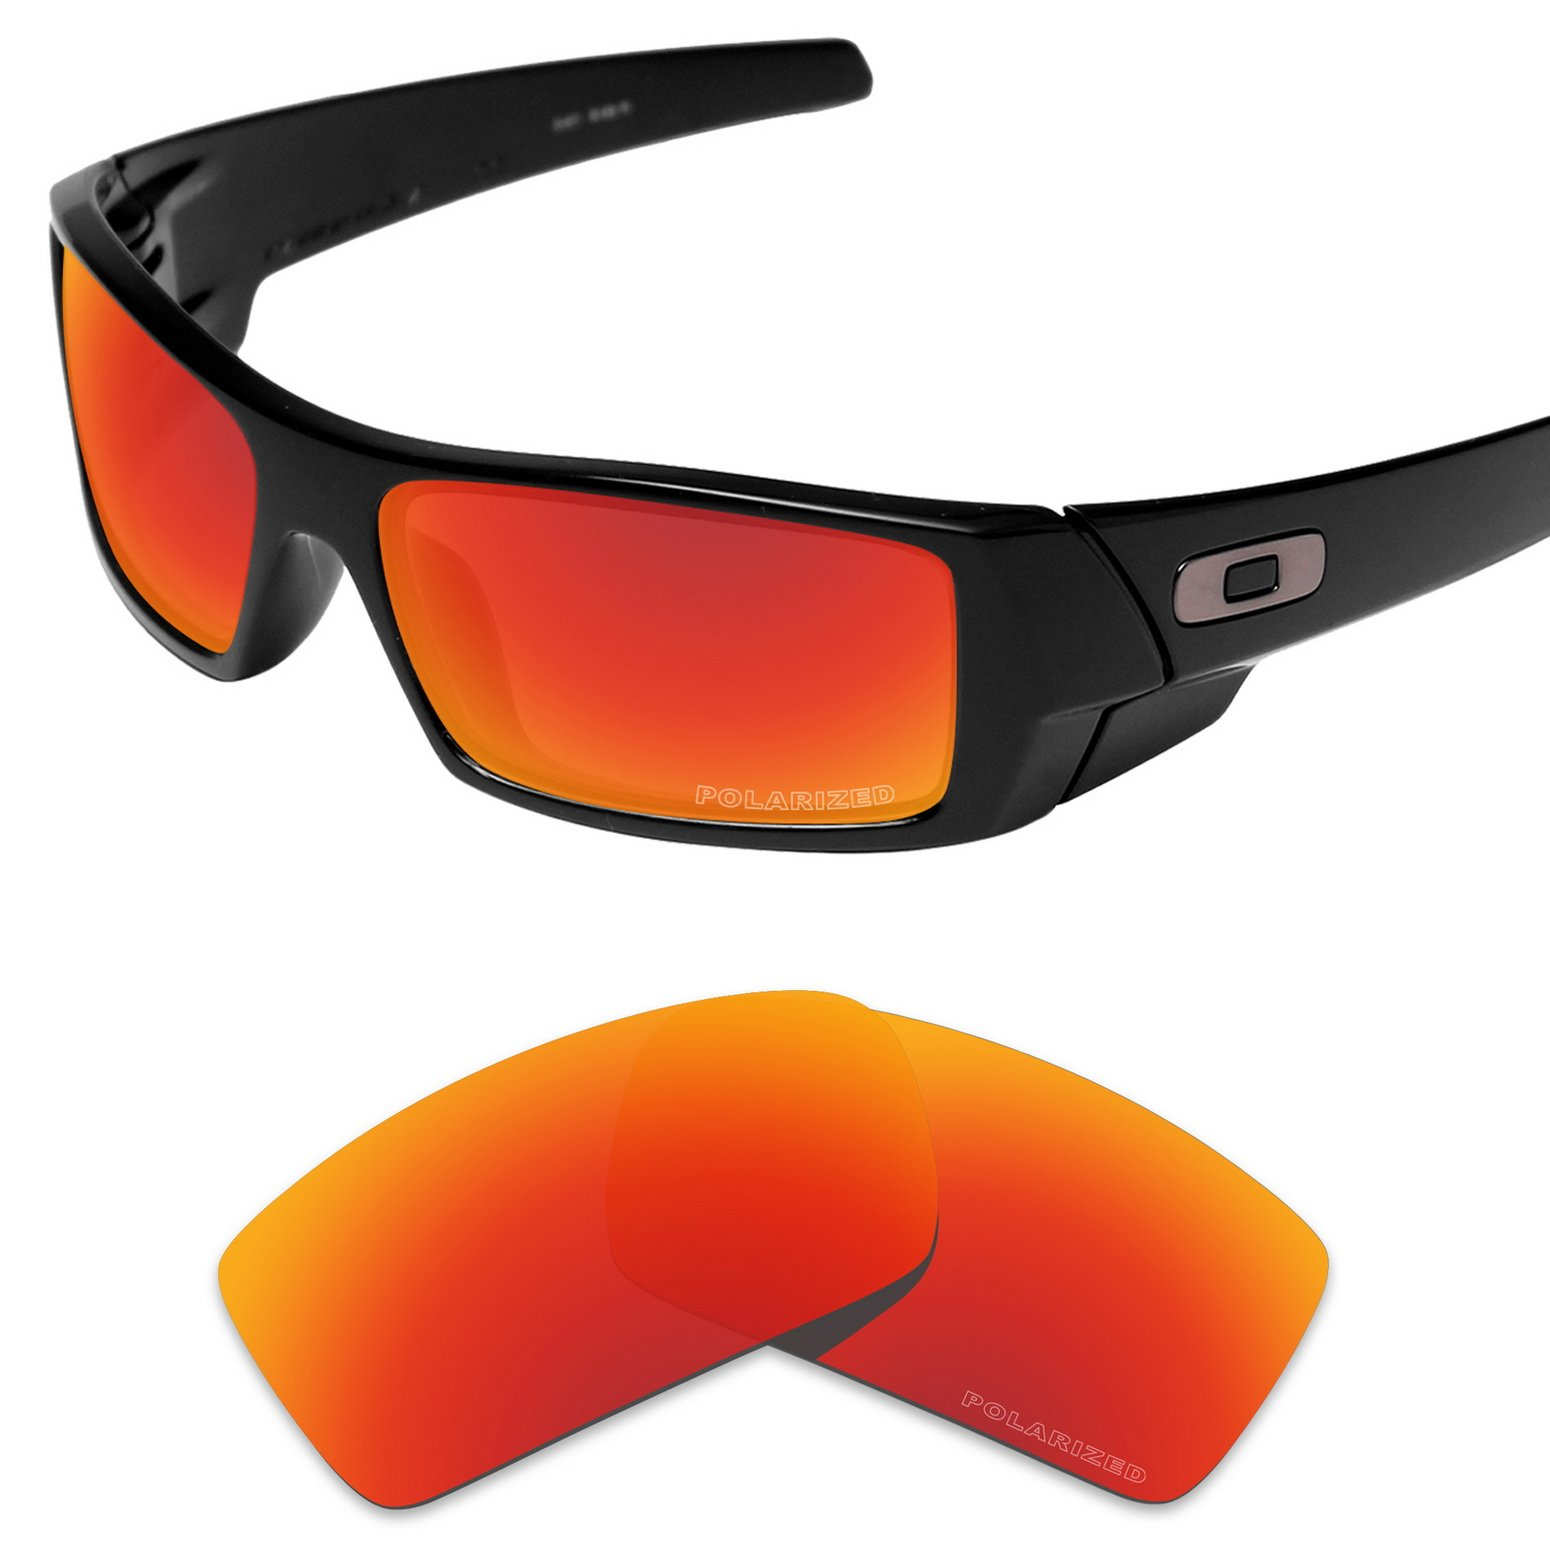 Tintart Performance Replacement Lenses for Oakley Gascan Sunglass Polarized Etched-Fire Red by Tintart